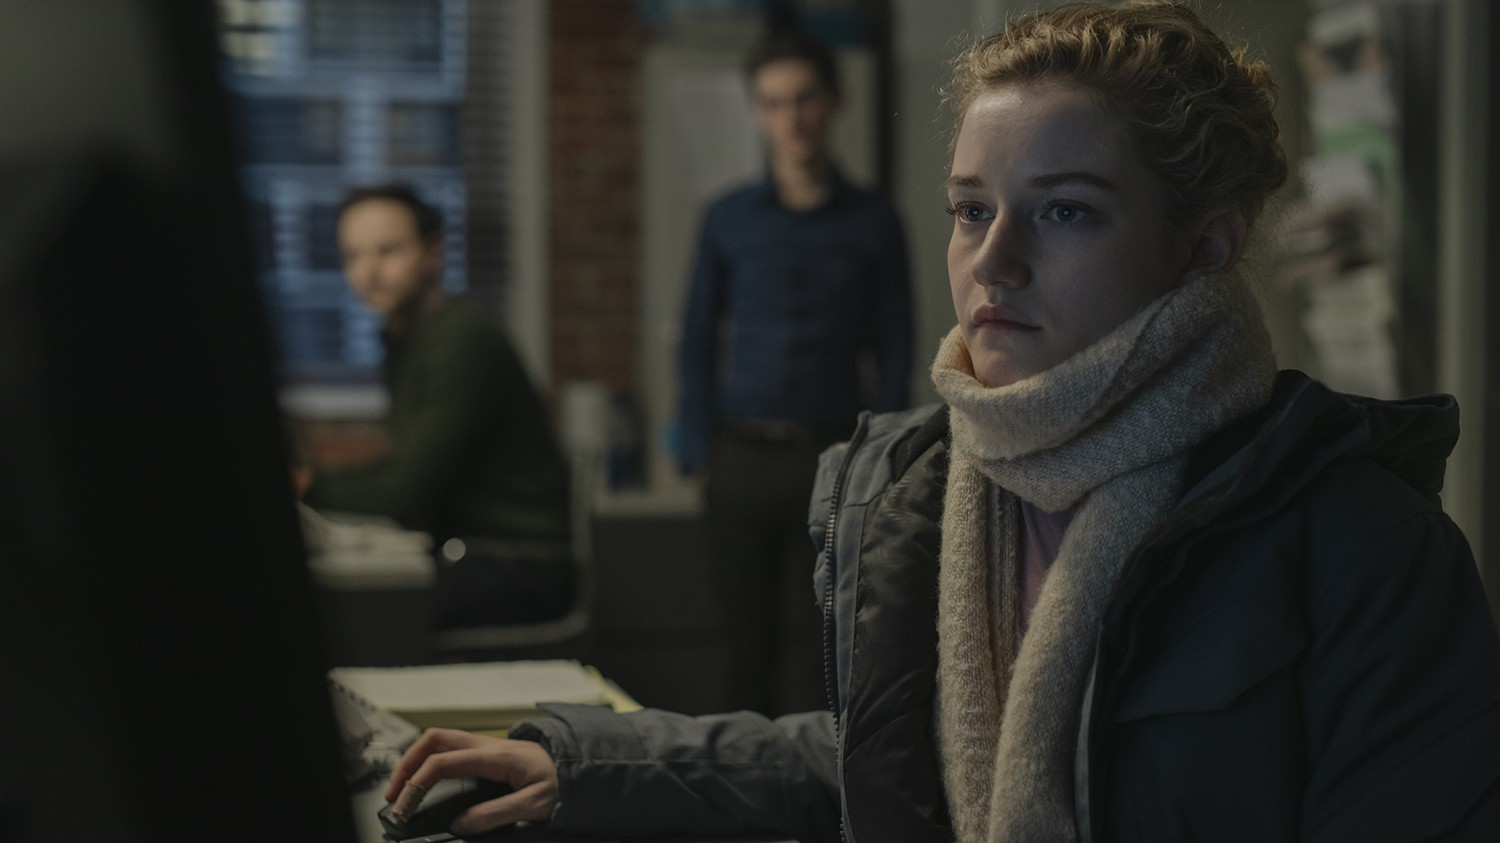 A woman wearing a white scarf sits in front of a computer with two men looking on.